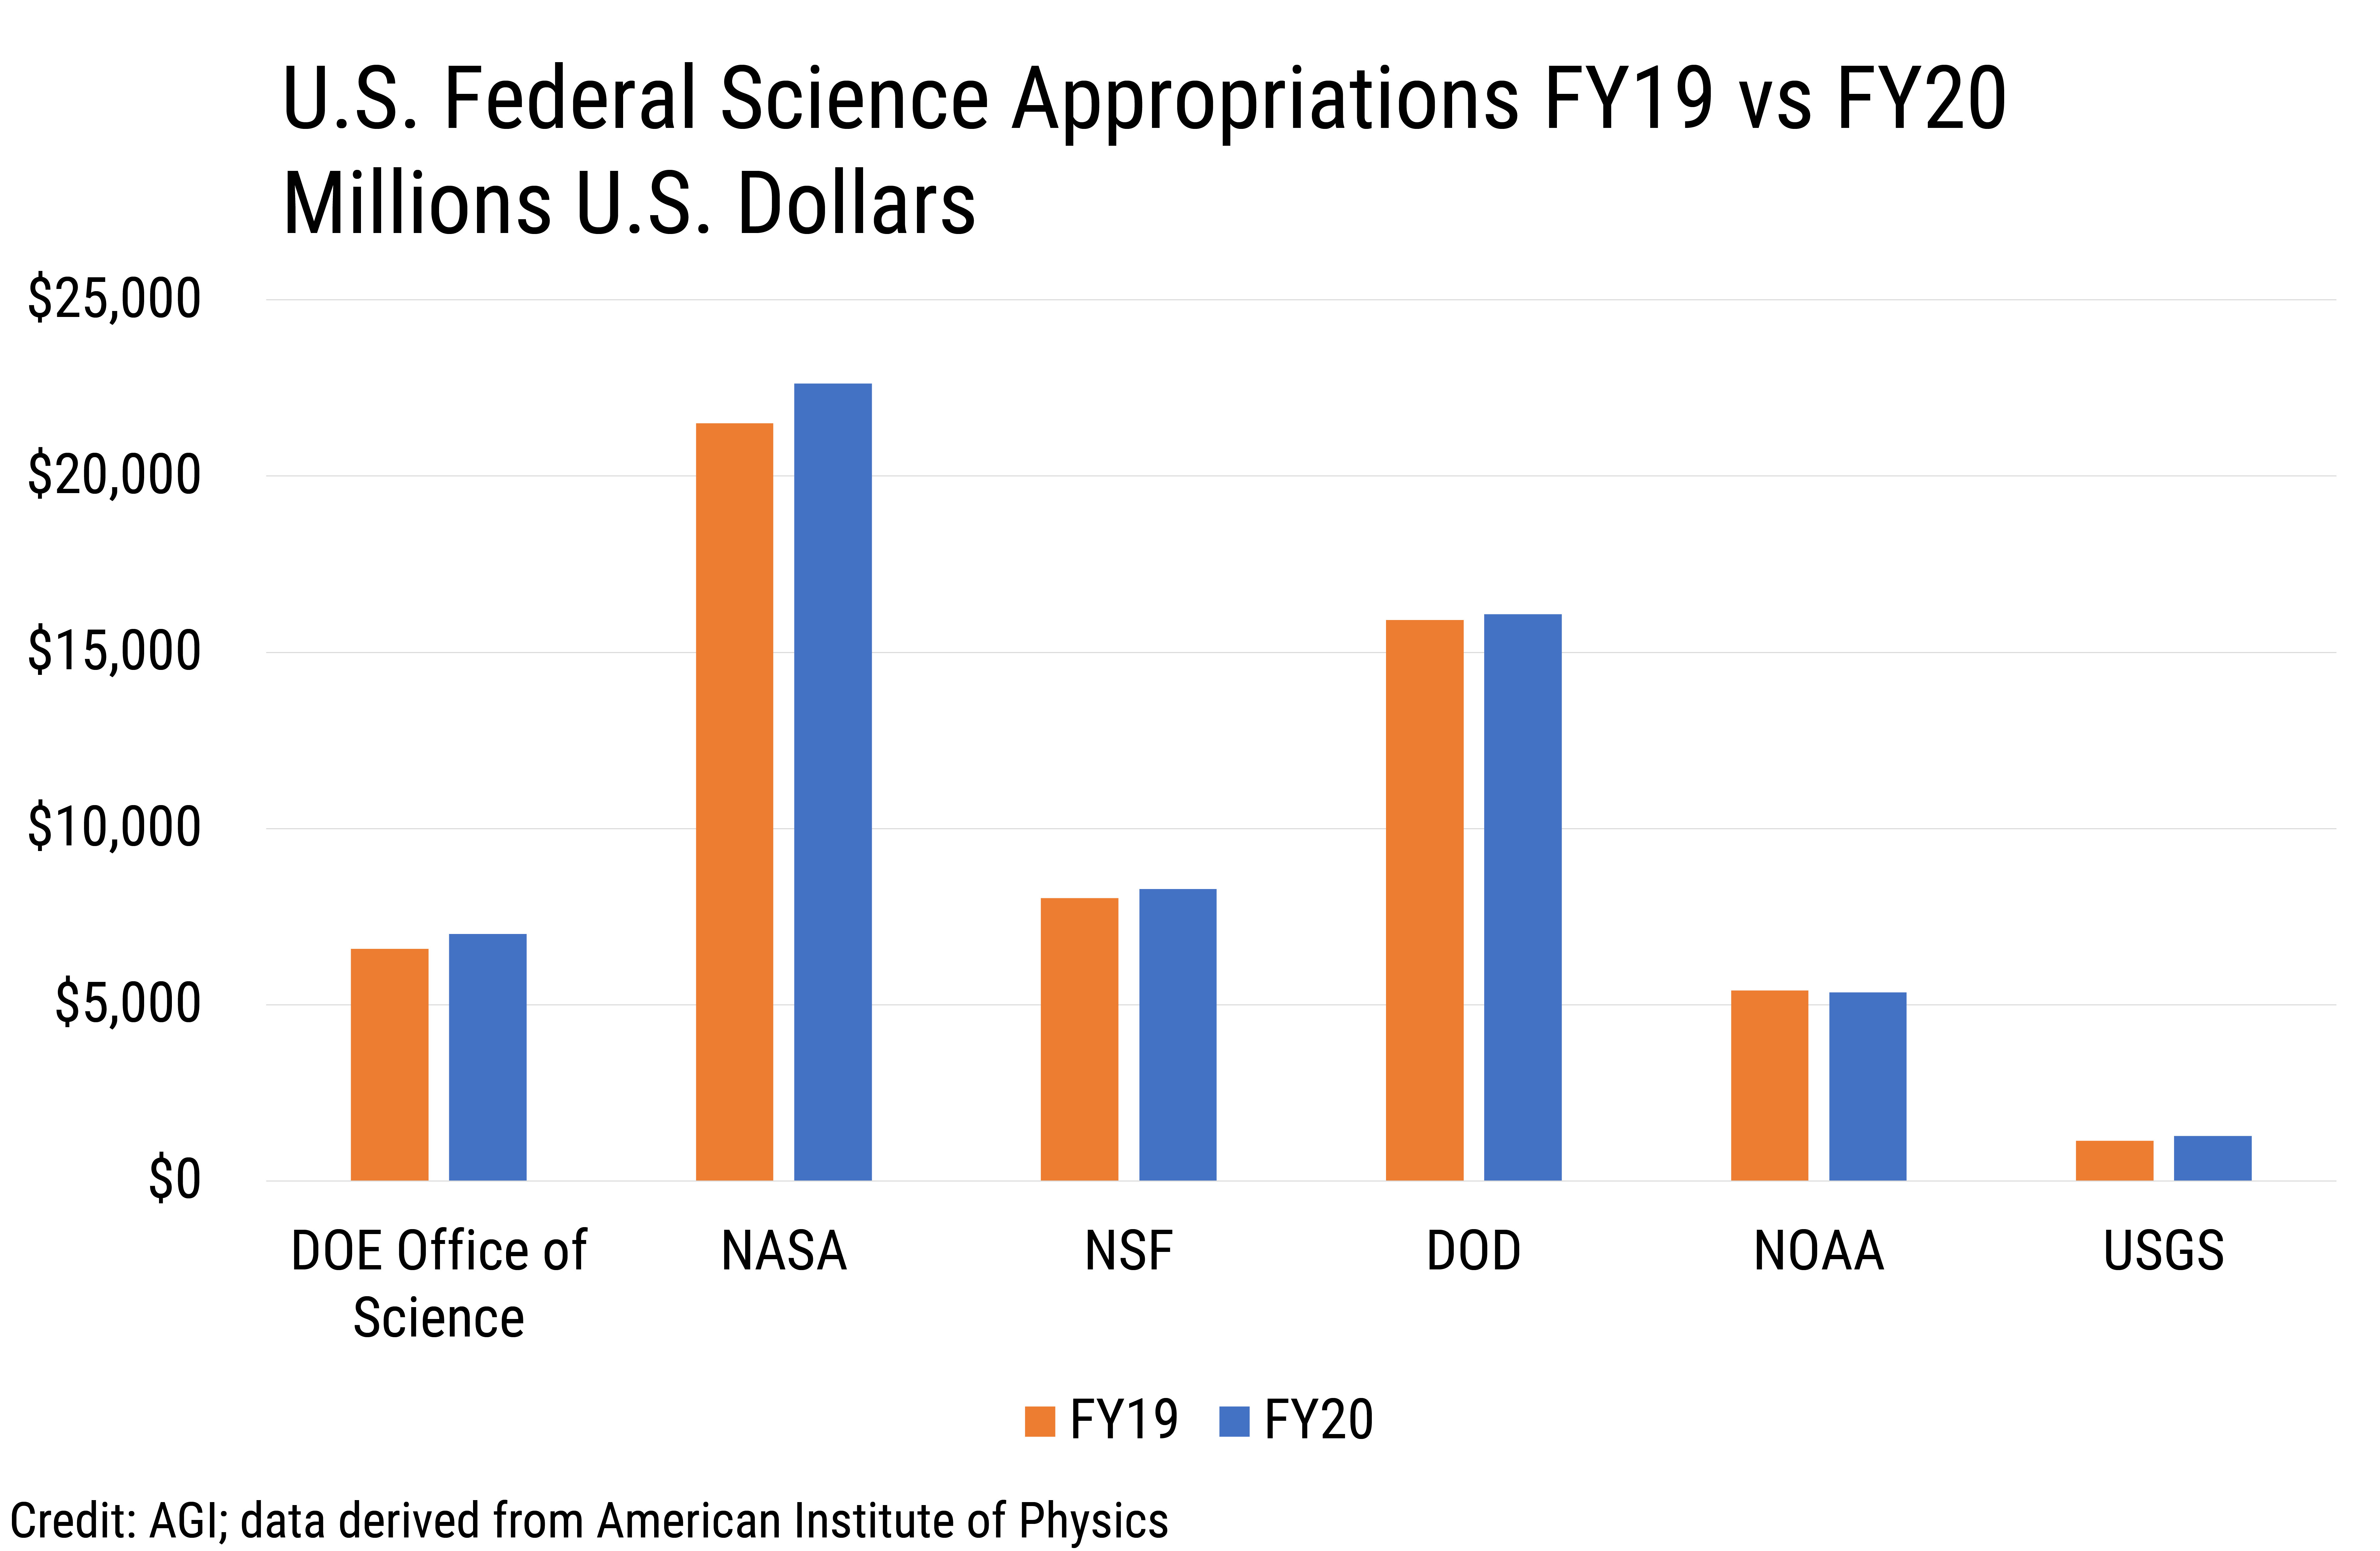 Data Brief 2020-002 chart 01: U.S. Federal Science Appropriations FY19 vs. FY20 (credit: AGI; data derived from the American Institute of Physics)